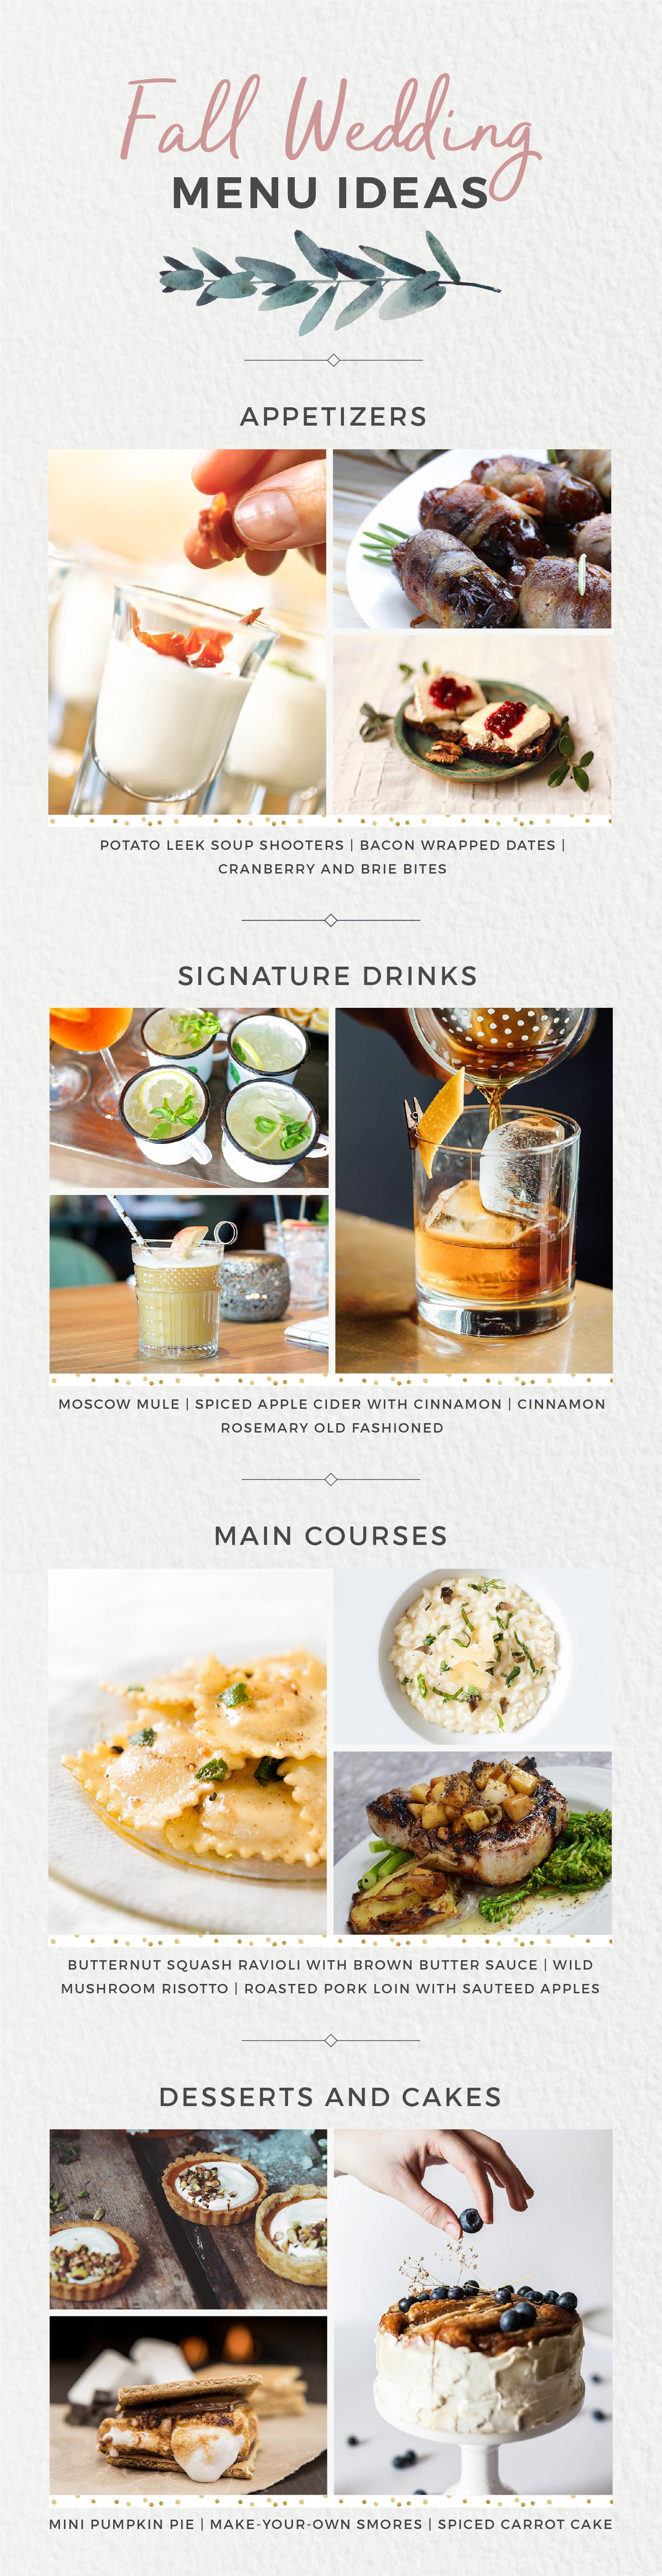 Wedding Menu Ideas for Every Season | Philly In Love